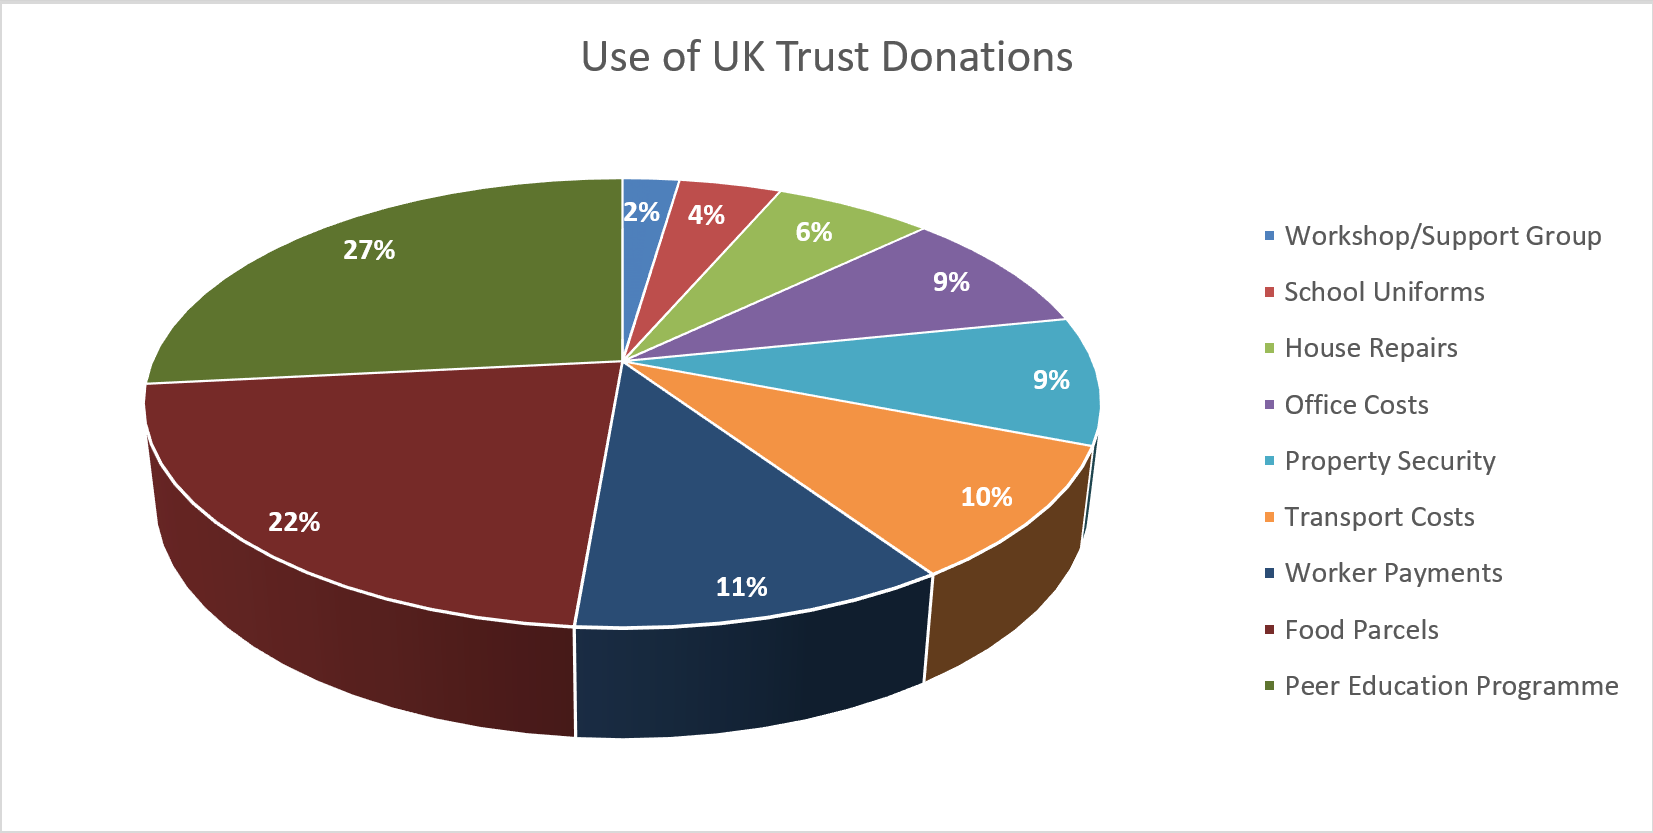 2015-16 donation spend pie